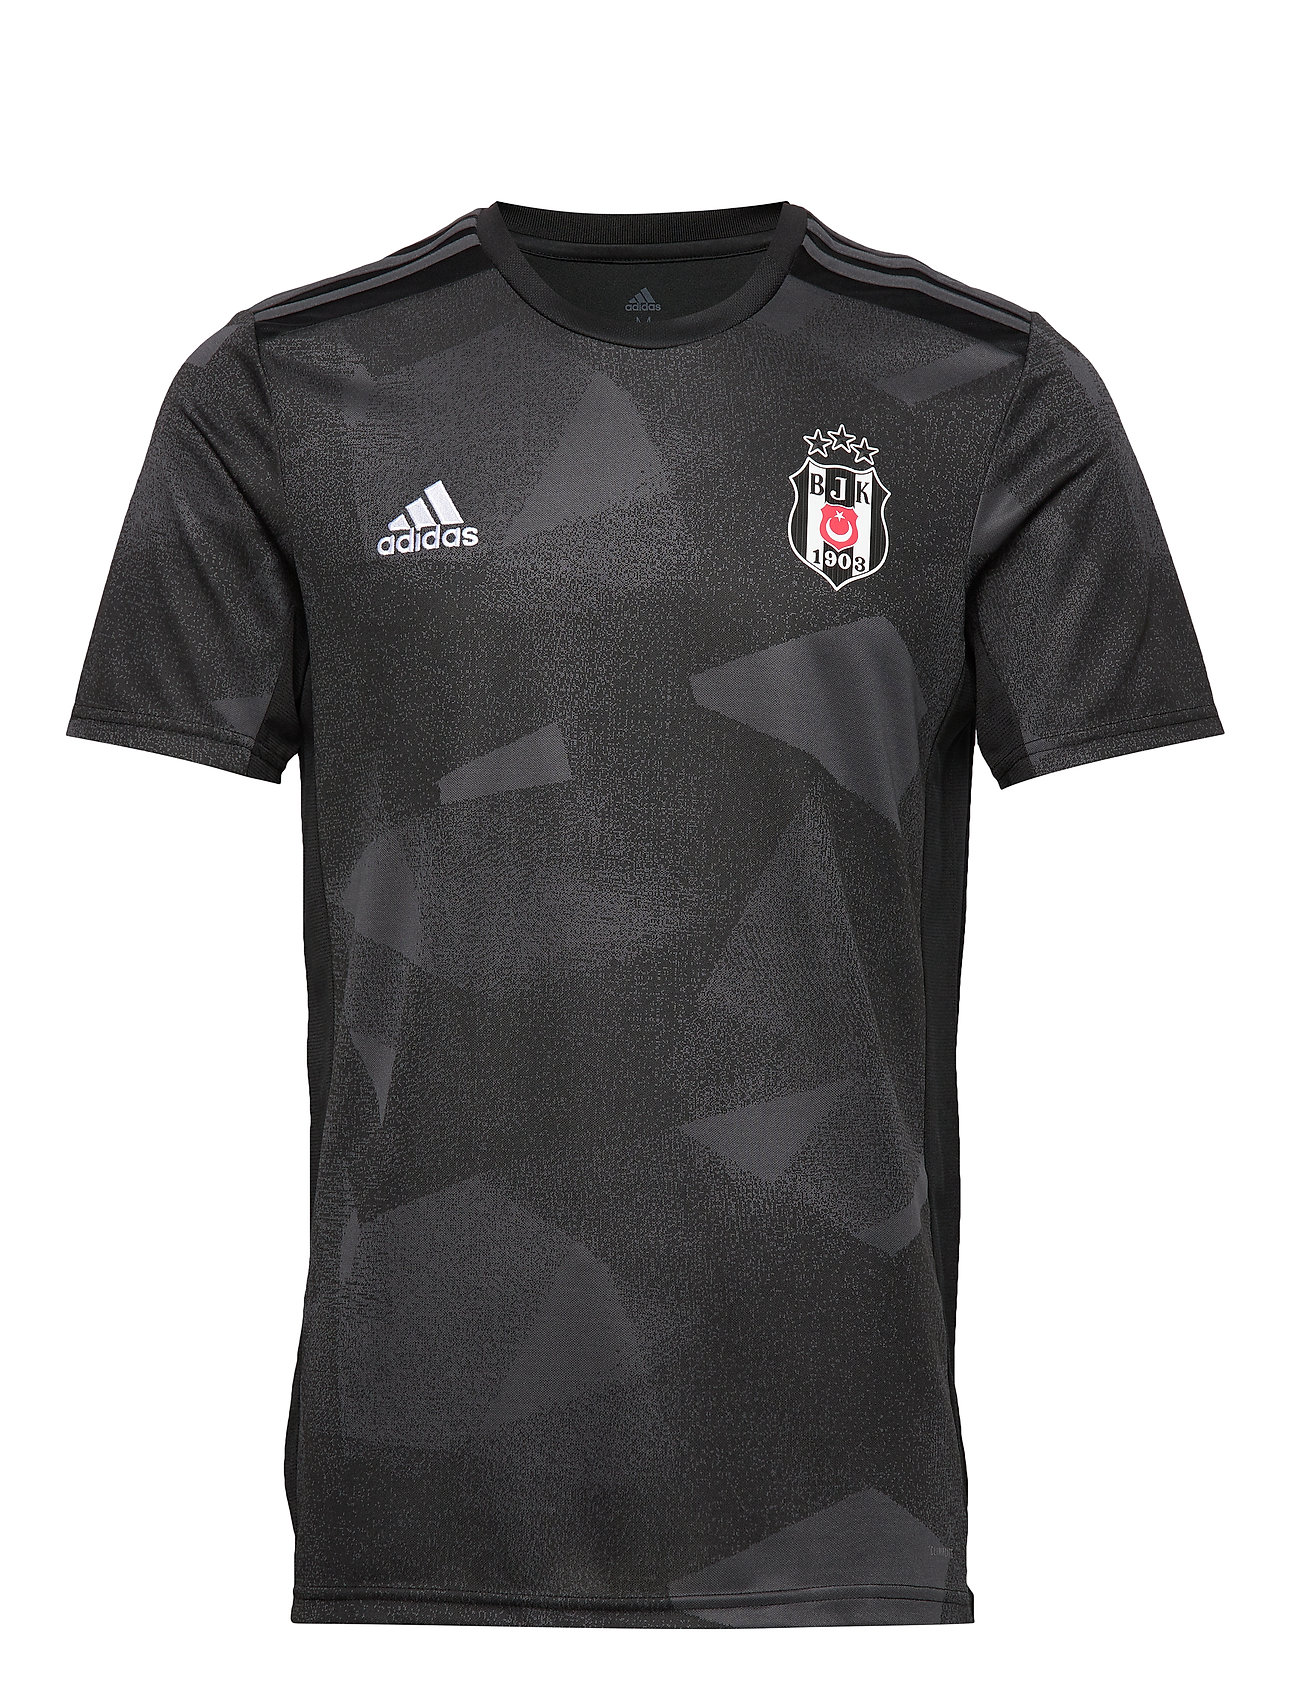 adidas Performance BJK A JSY - BLACK